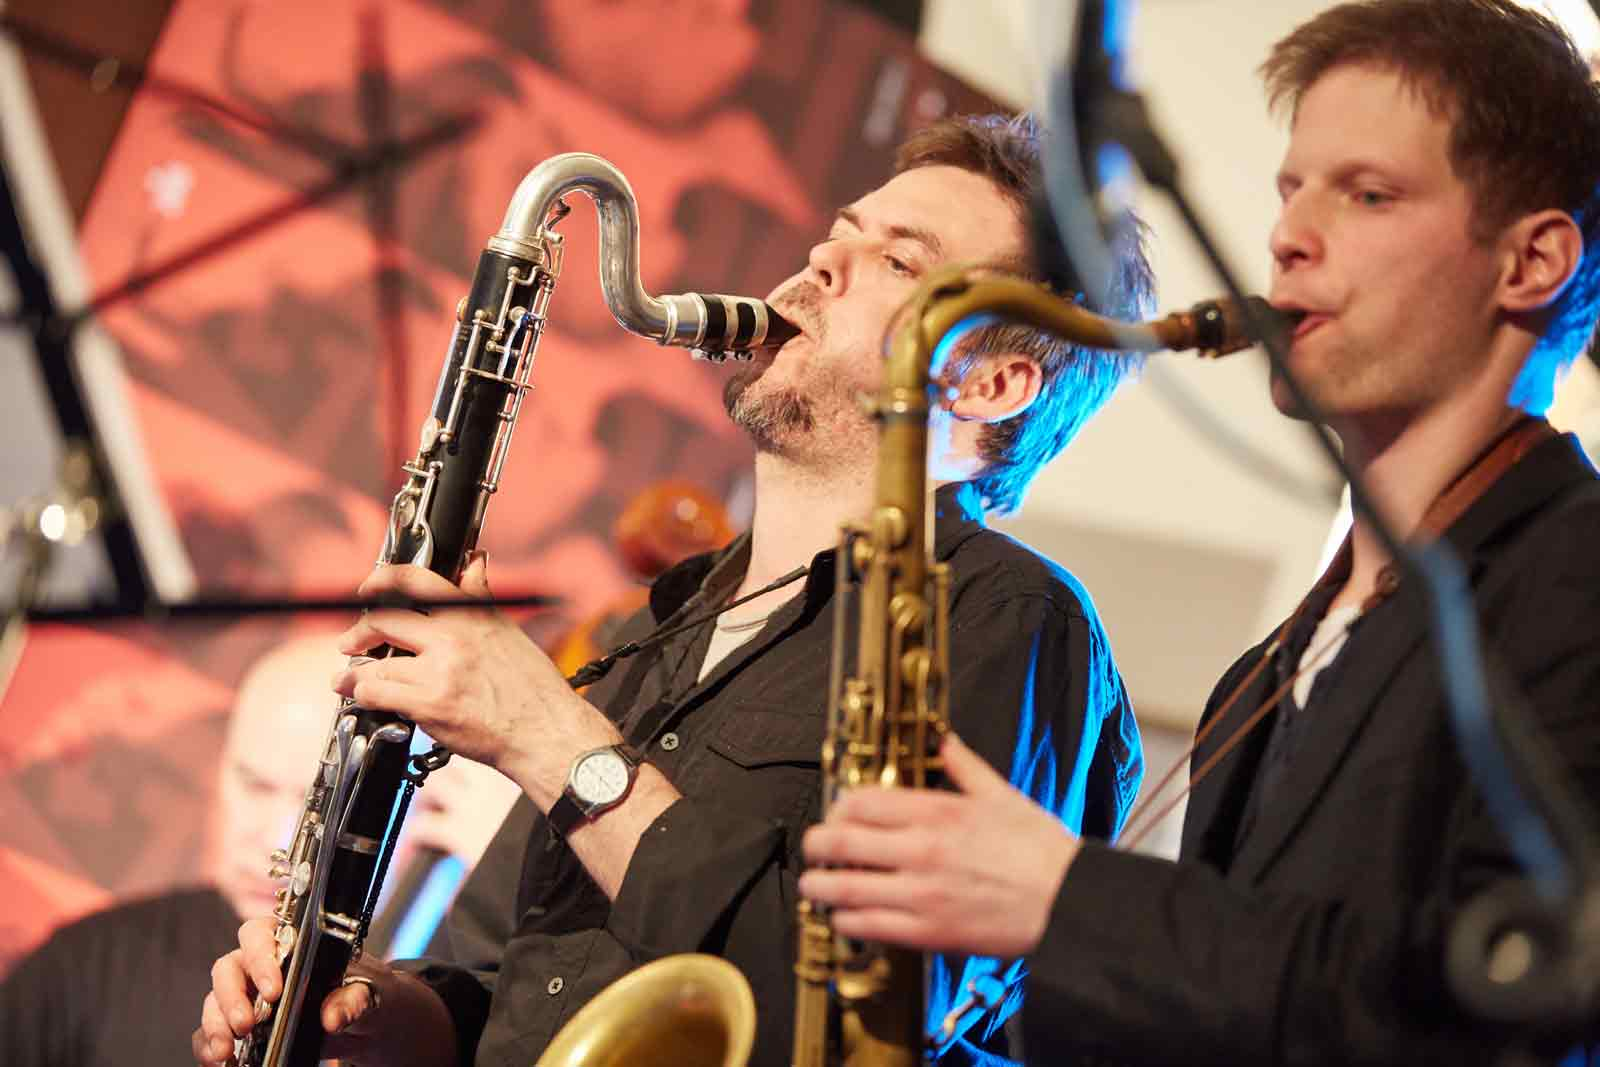 Marcel Barta and Lubos Soukup playing with Points Septet at Jazzinec Trutnov, photo Milos Salek